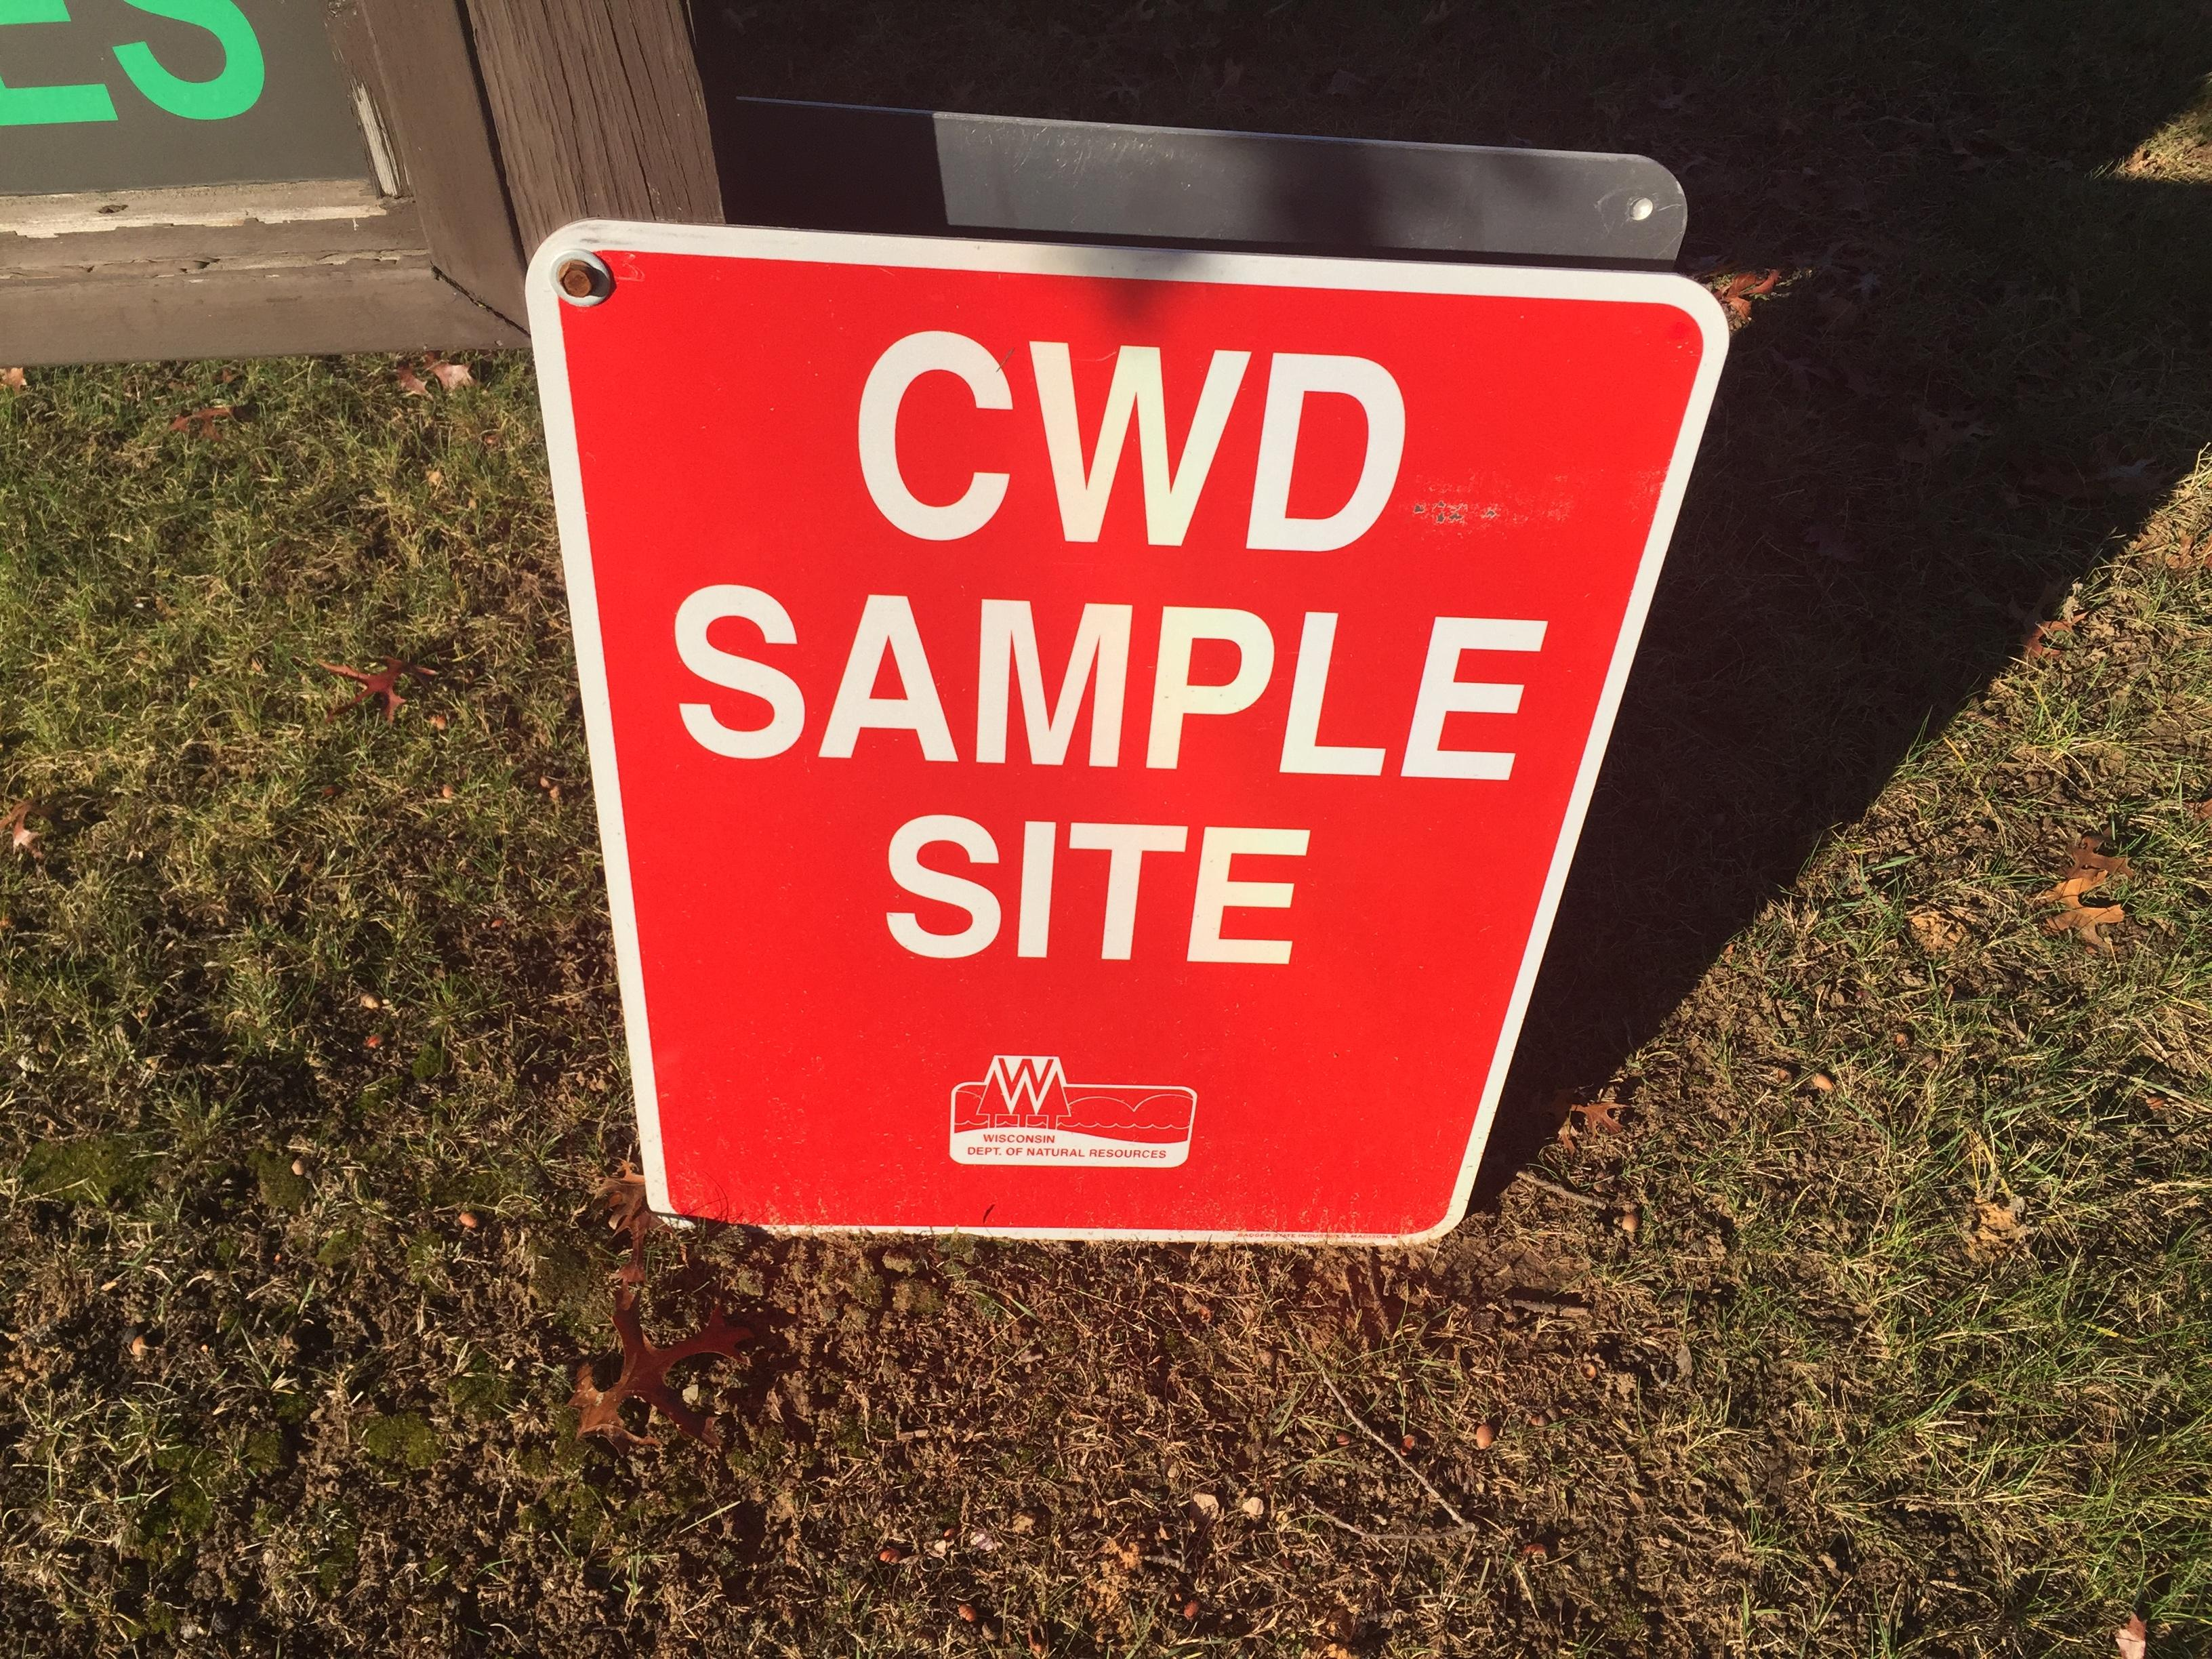 CWD sample site sign in Shawano, November 6, 2017 (WLUK/Eric Peterson)